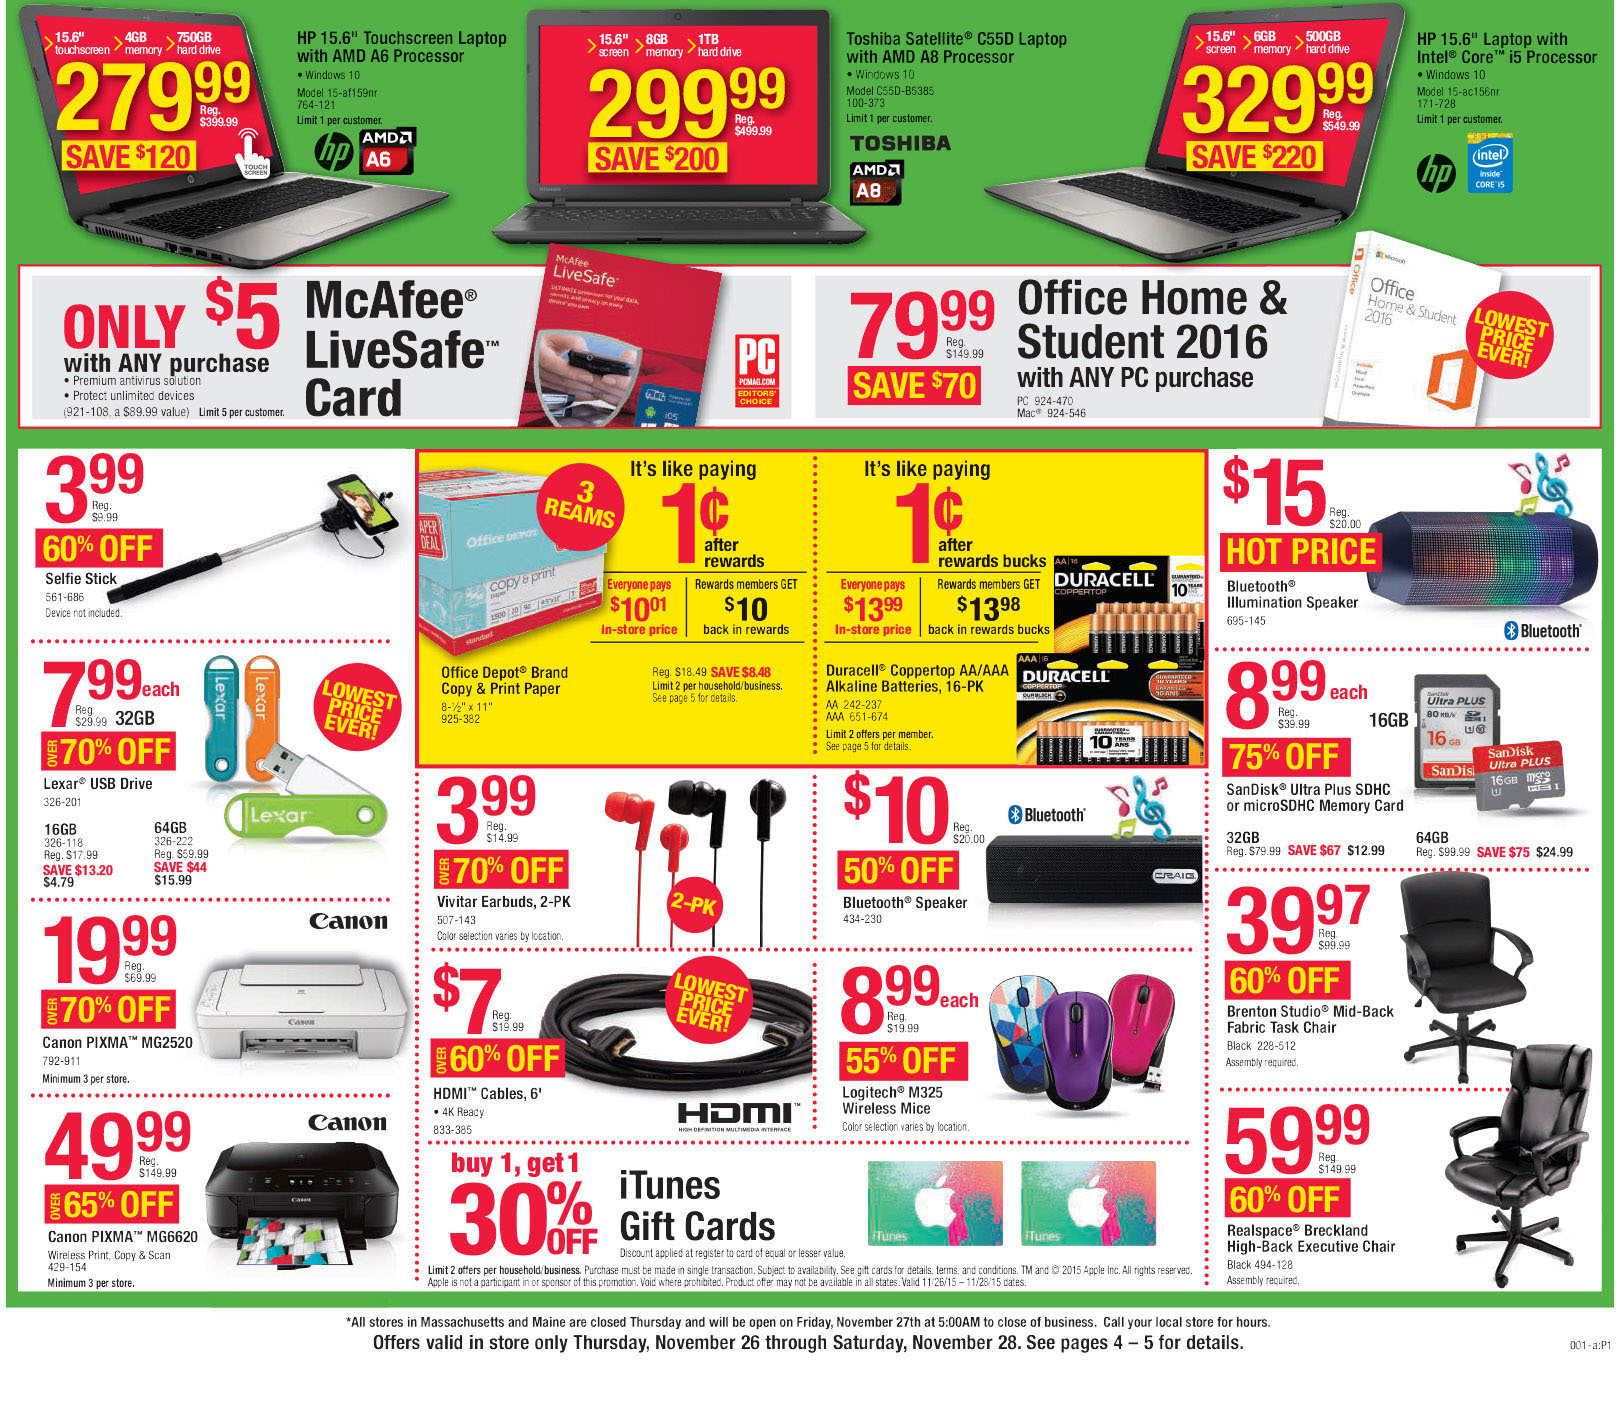 Office Depot / Office Max Black Friday 2015 Ad Page 2